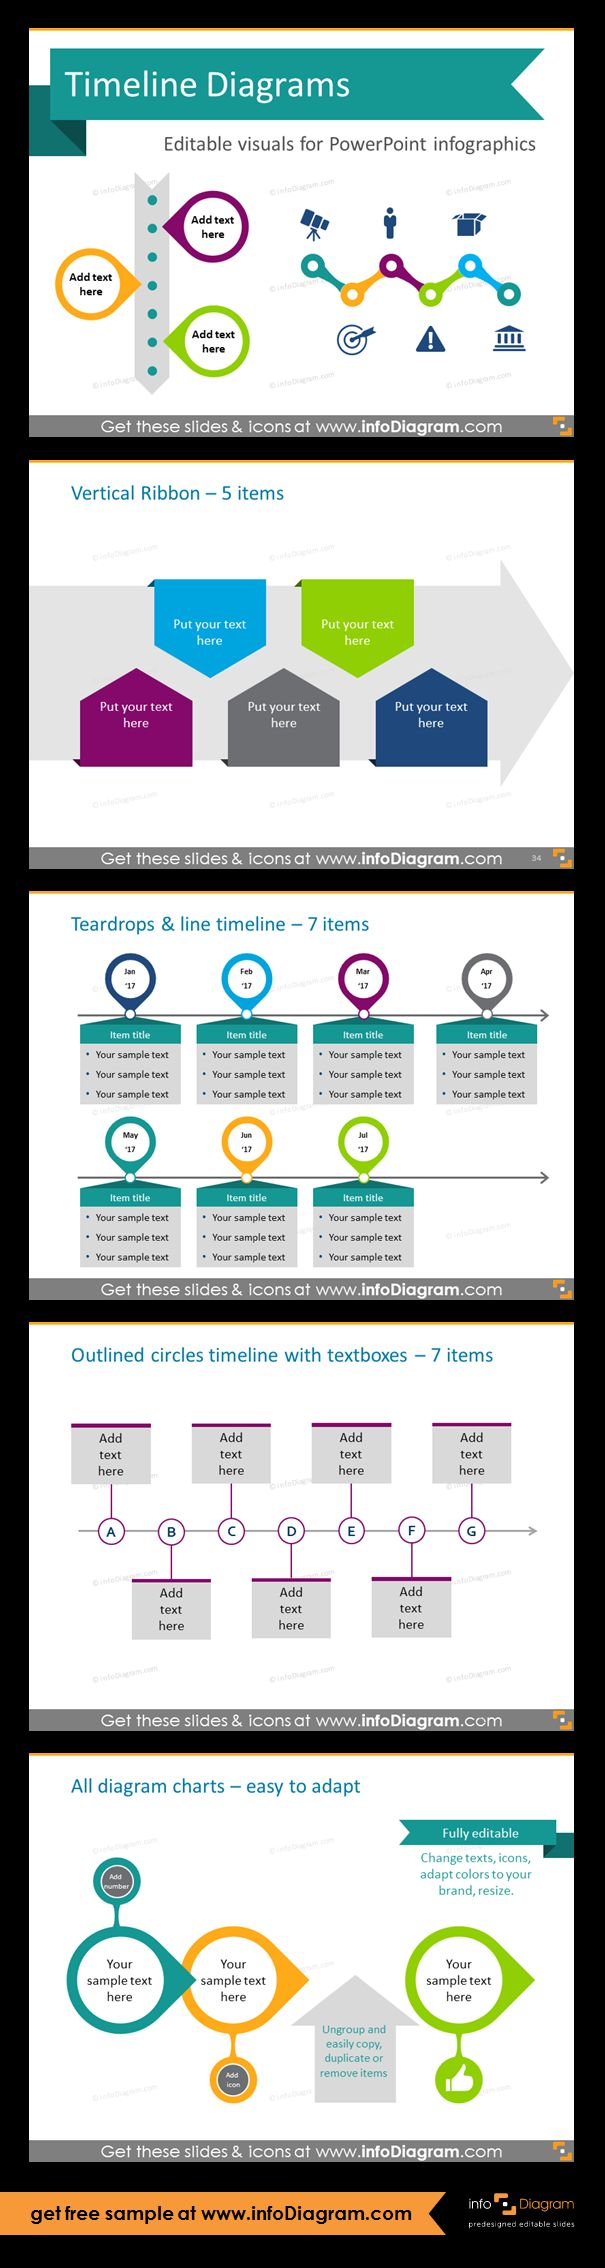 Template slides for Timeline diagrams and Time infographics. Editable PowerPoint graphics for showing history, agenda, linear process flow charts, project timelines, planning phases and roadmaps by modern infographics. Vertical ribbon, teardrops and line, outlined circles timelines. Replace default tables and ordered lists with more visual timeline arrows. All icons and lists are fully editable, so you can adapt colors to you brand identity - example of editing.